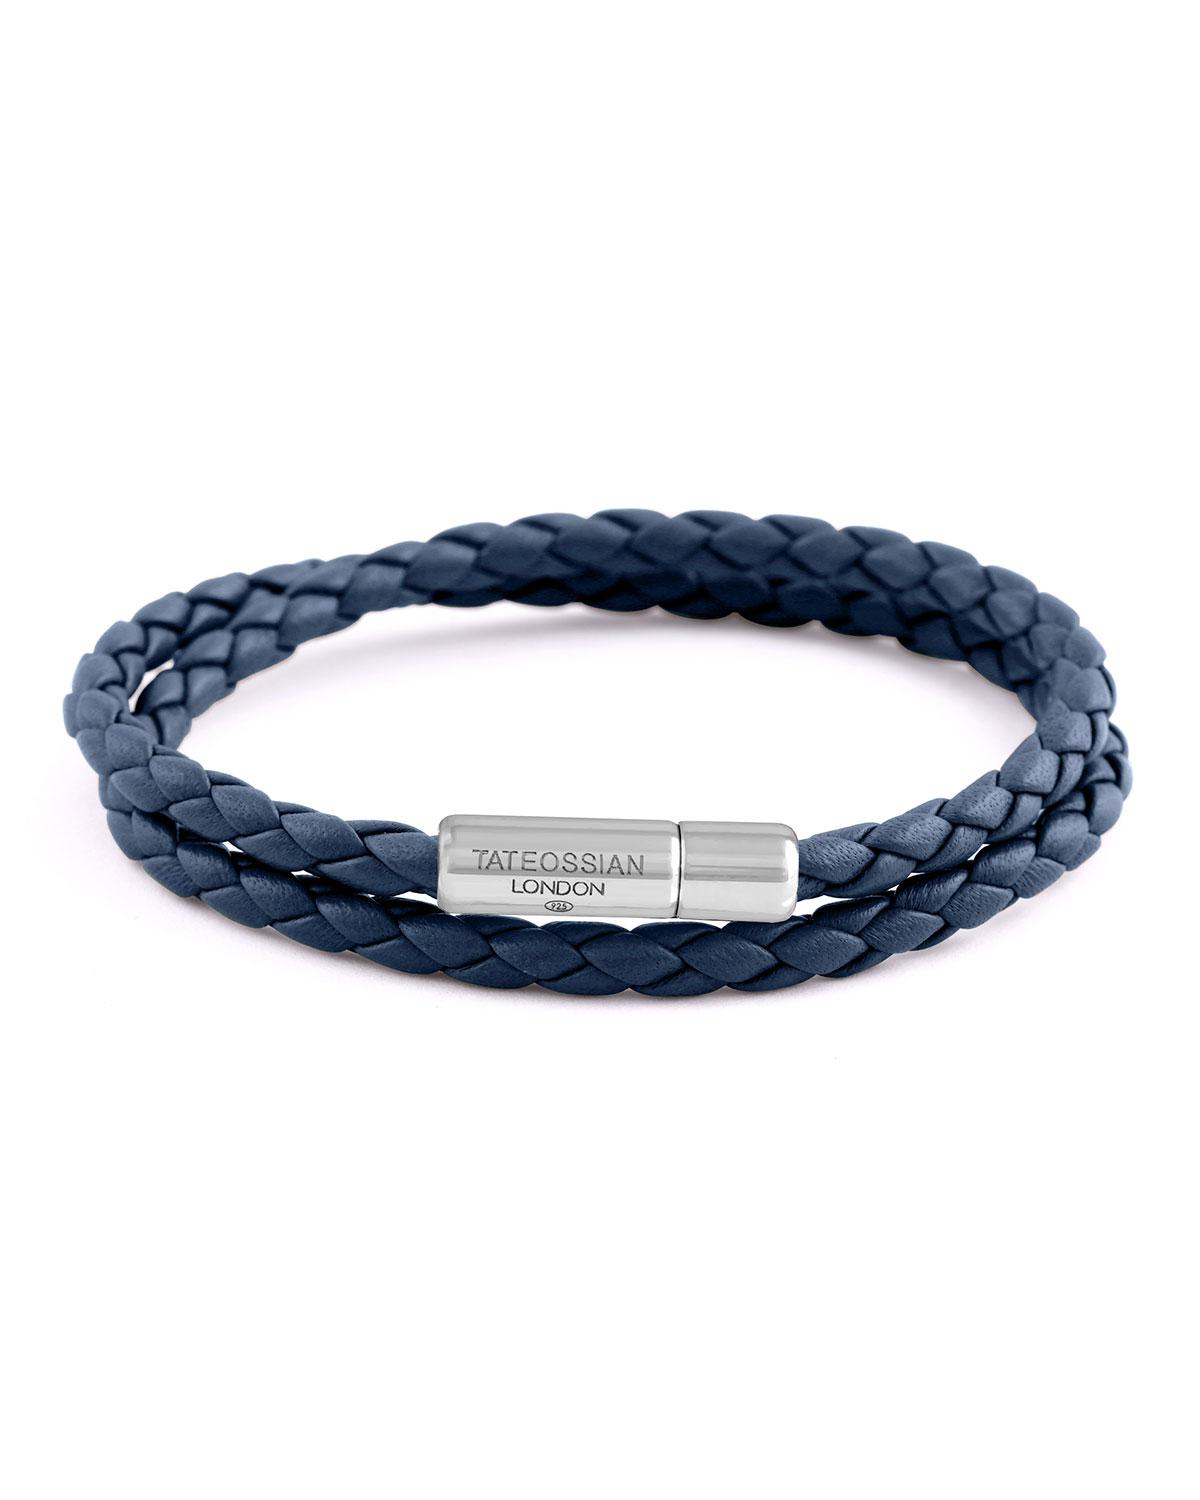 Tateossian Mens Multi-Strand Leather Cobra Bracelet, Navy